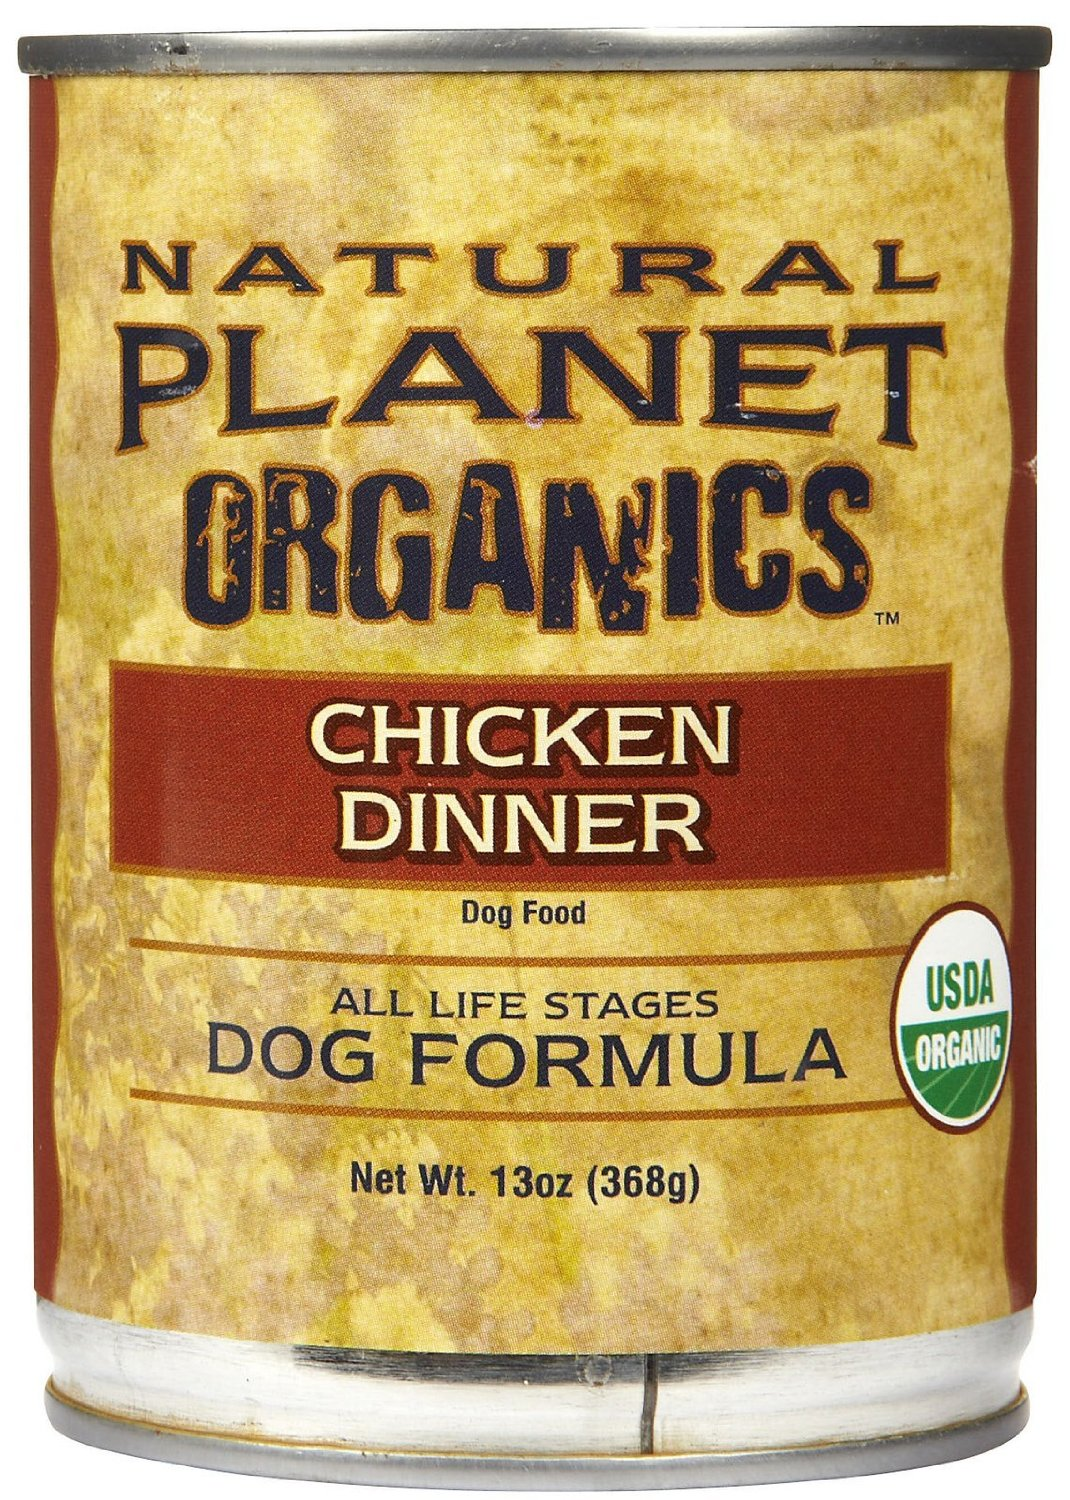 Natural Planet Organics Canned Dog Food